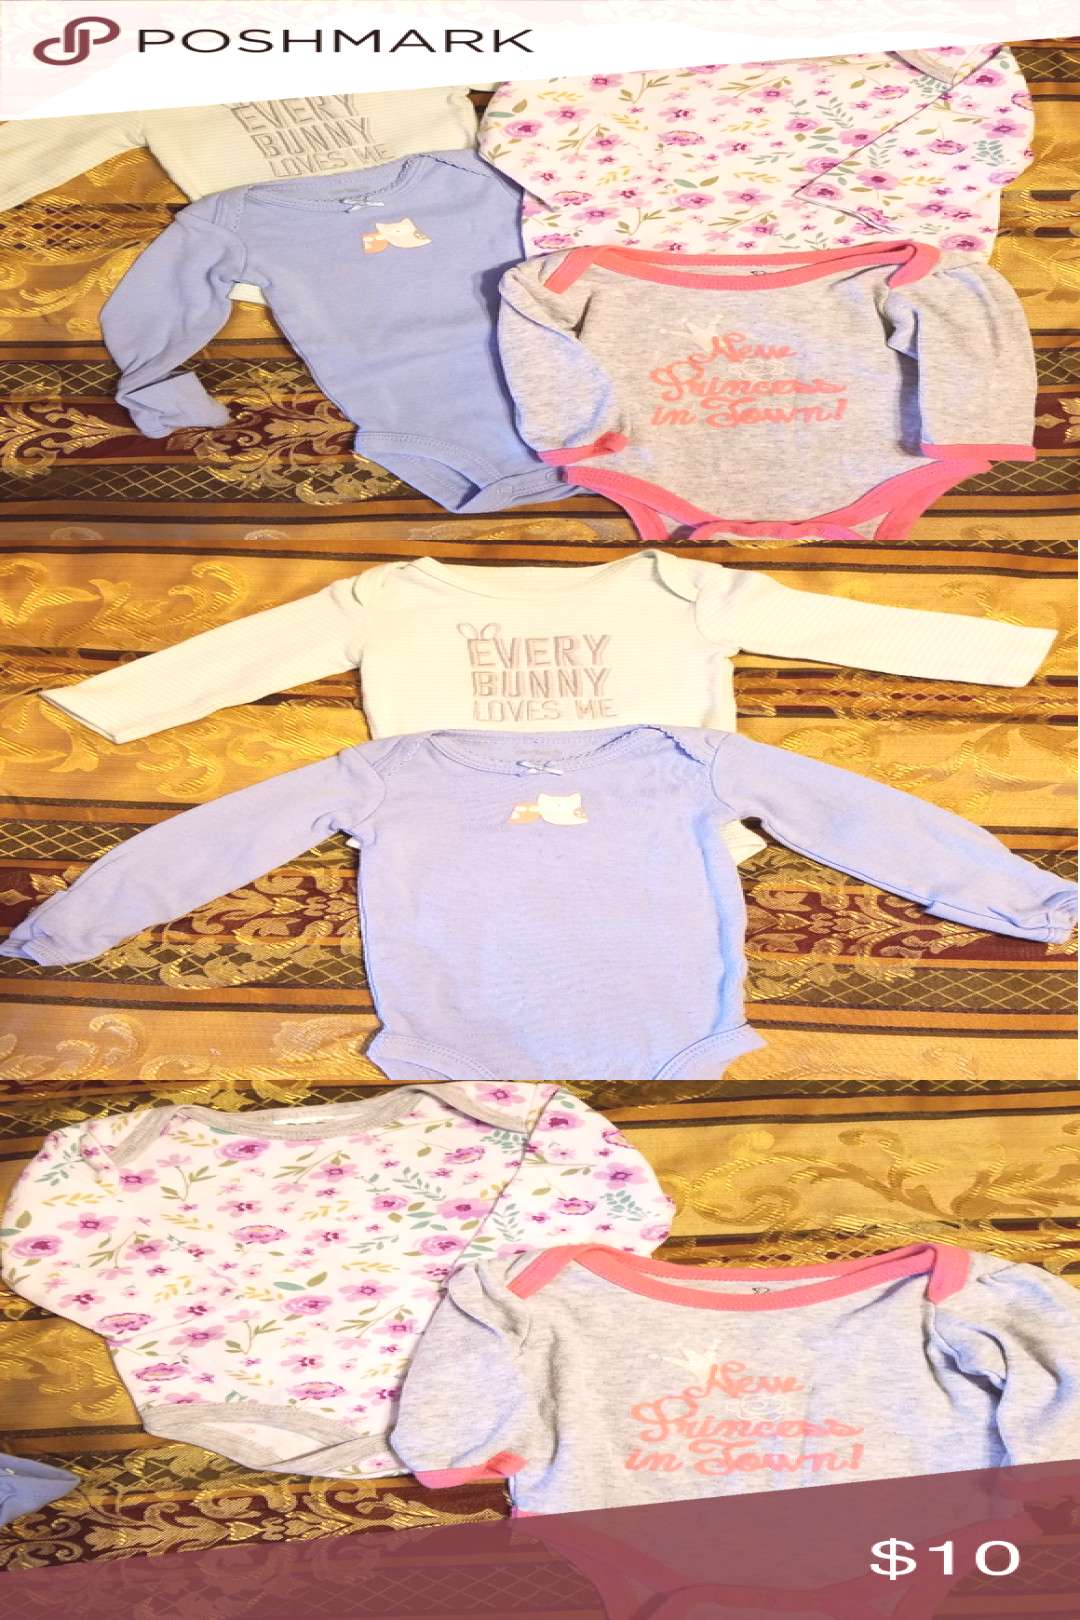 Cute onesies Like new! Not sure she even wore them! Cute baby blue with owls and mint green with gr